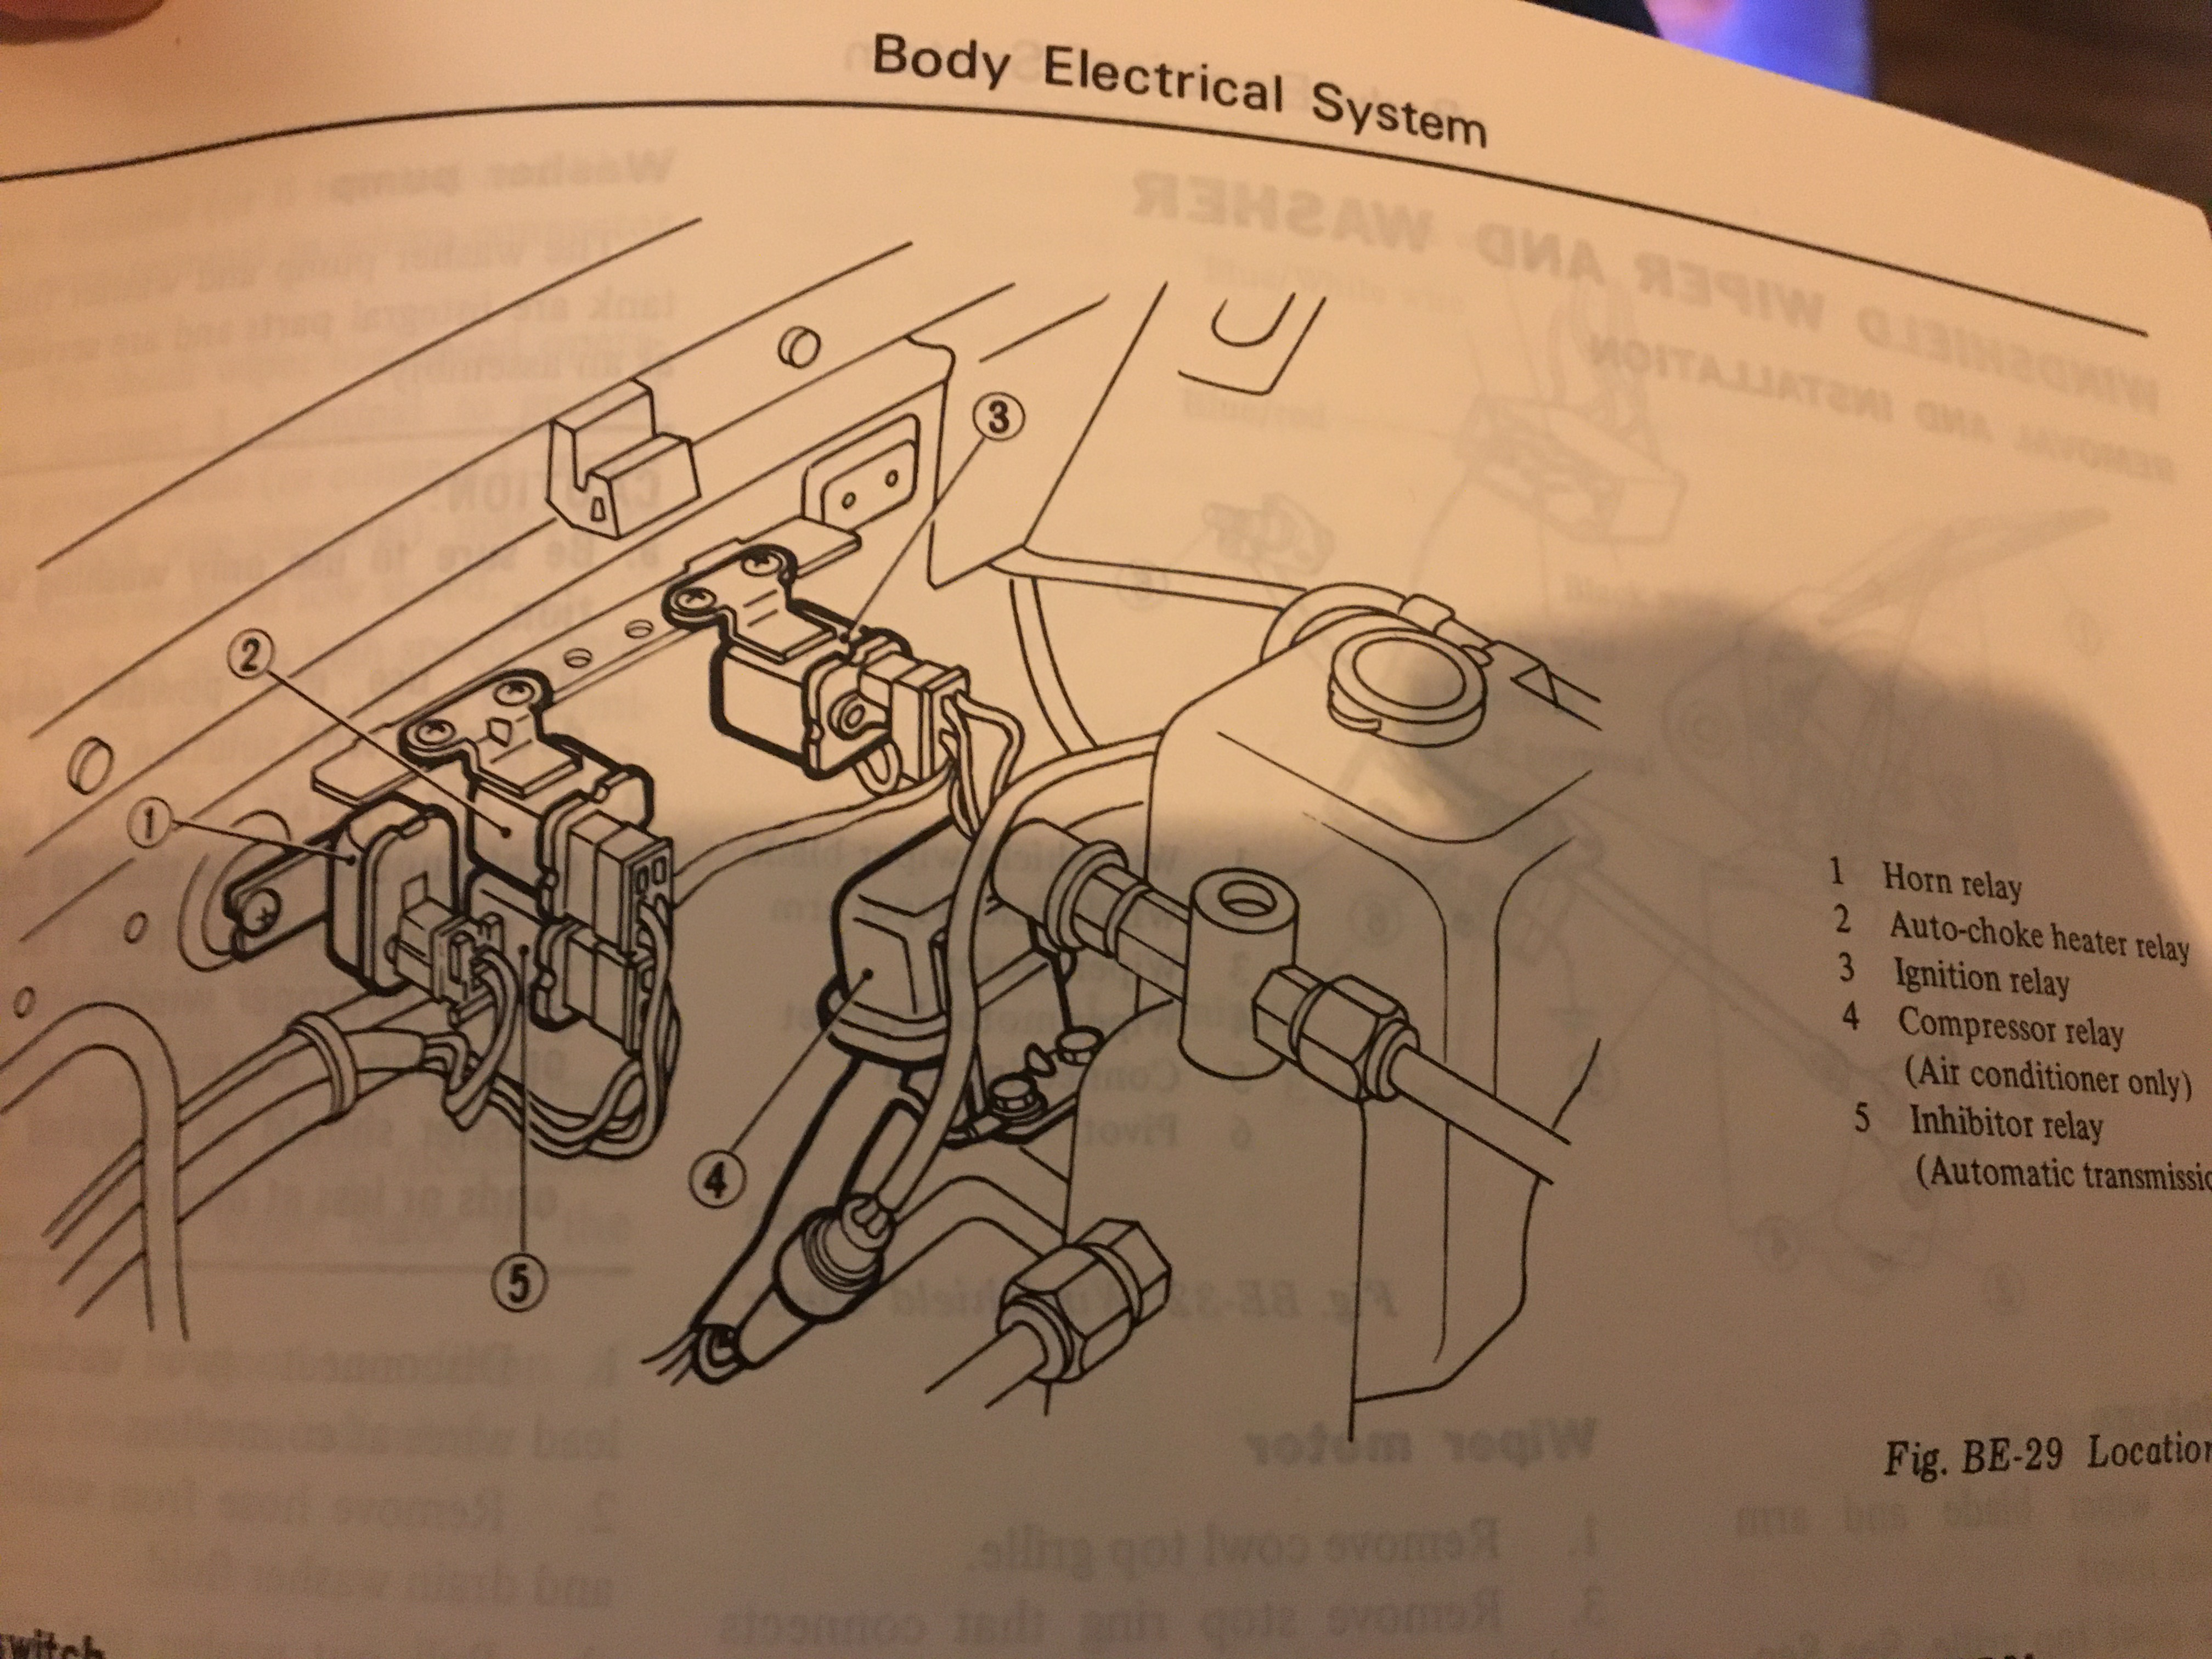 [FPWZ_2684]  Removing unnecessary stuff from engine bay - Electrical - Ratsun Forums | 240z Engine Bay Diagram |  | Ratsun